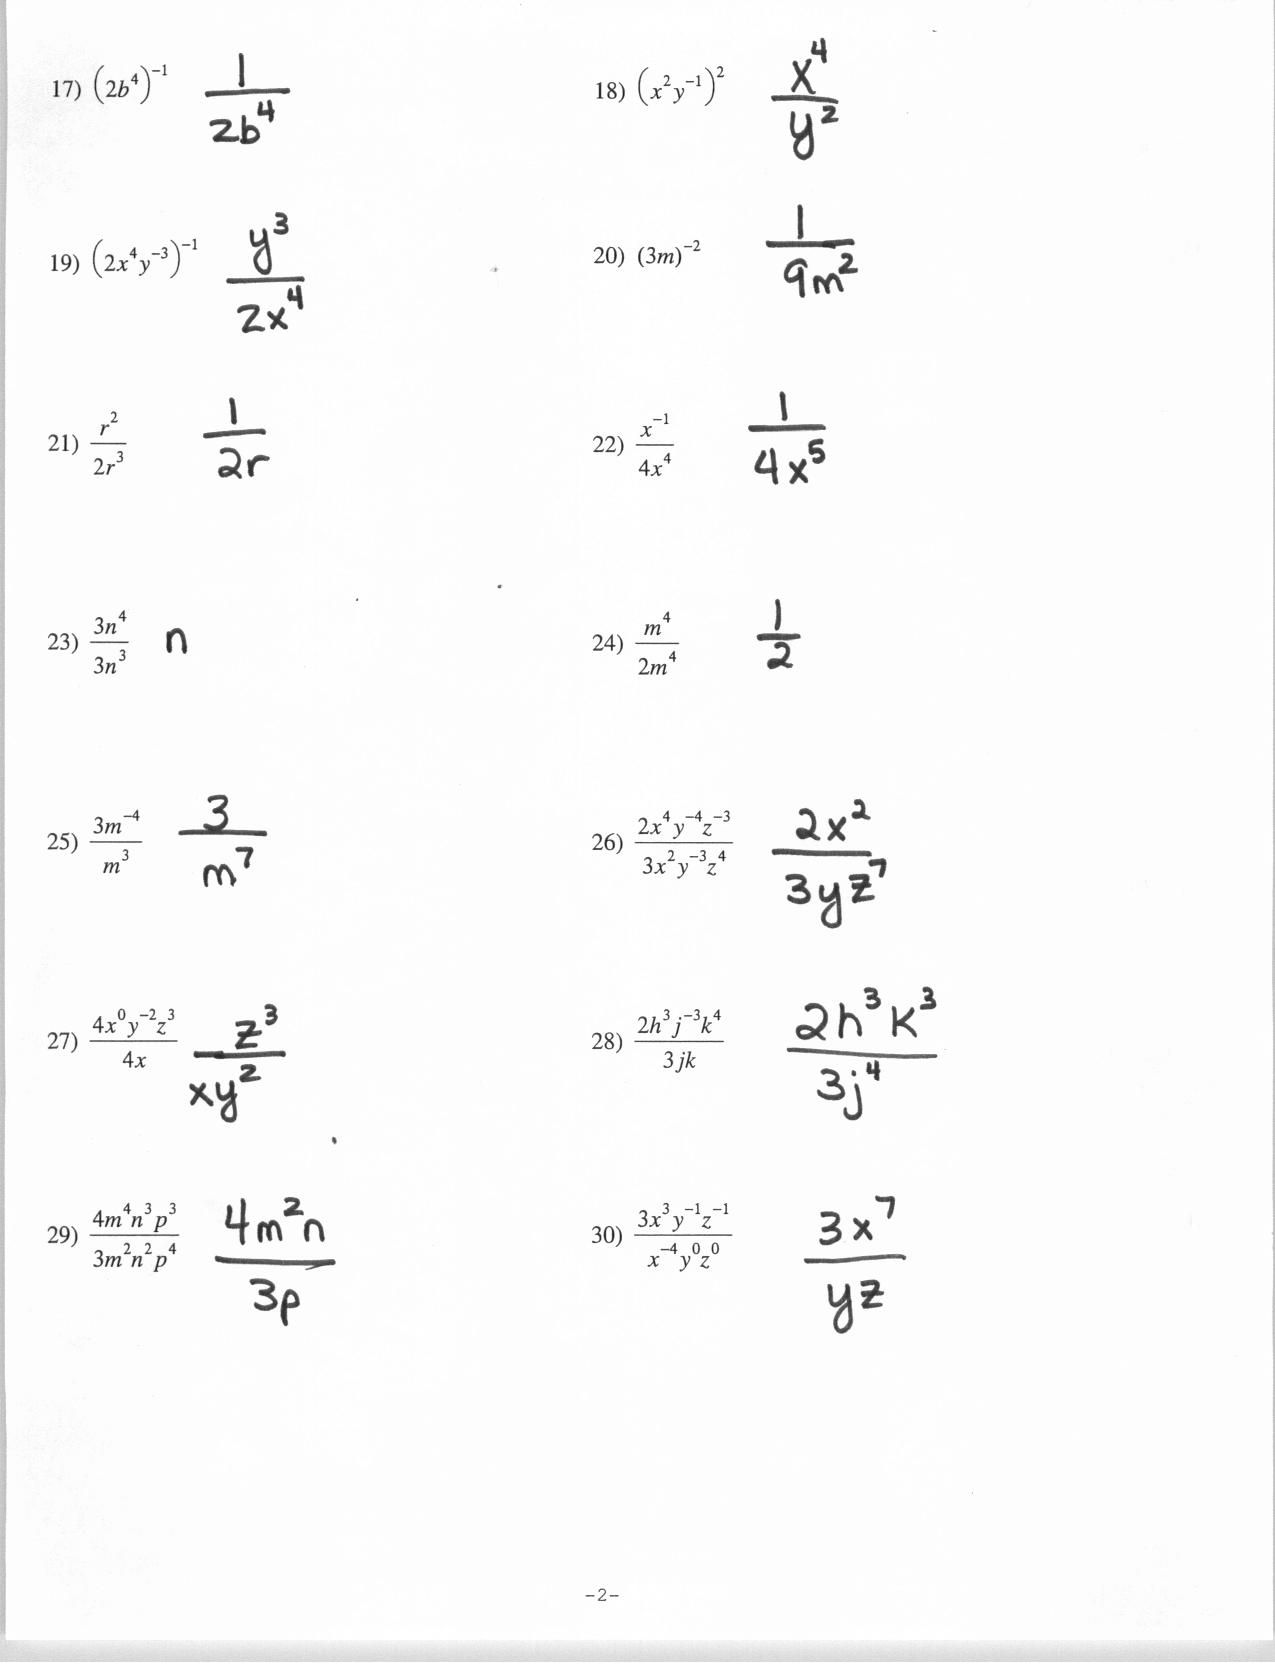 Printables Exponents Worksheets With Answers worksheet properties of exponents answers kerriwaller 1000 images about algebra on pinterest mobile app equations and